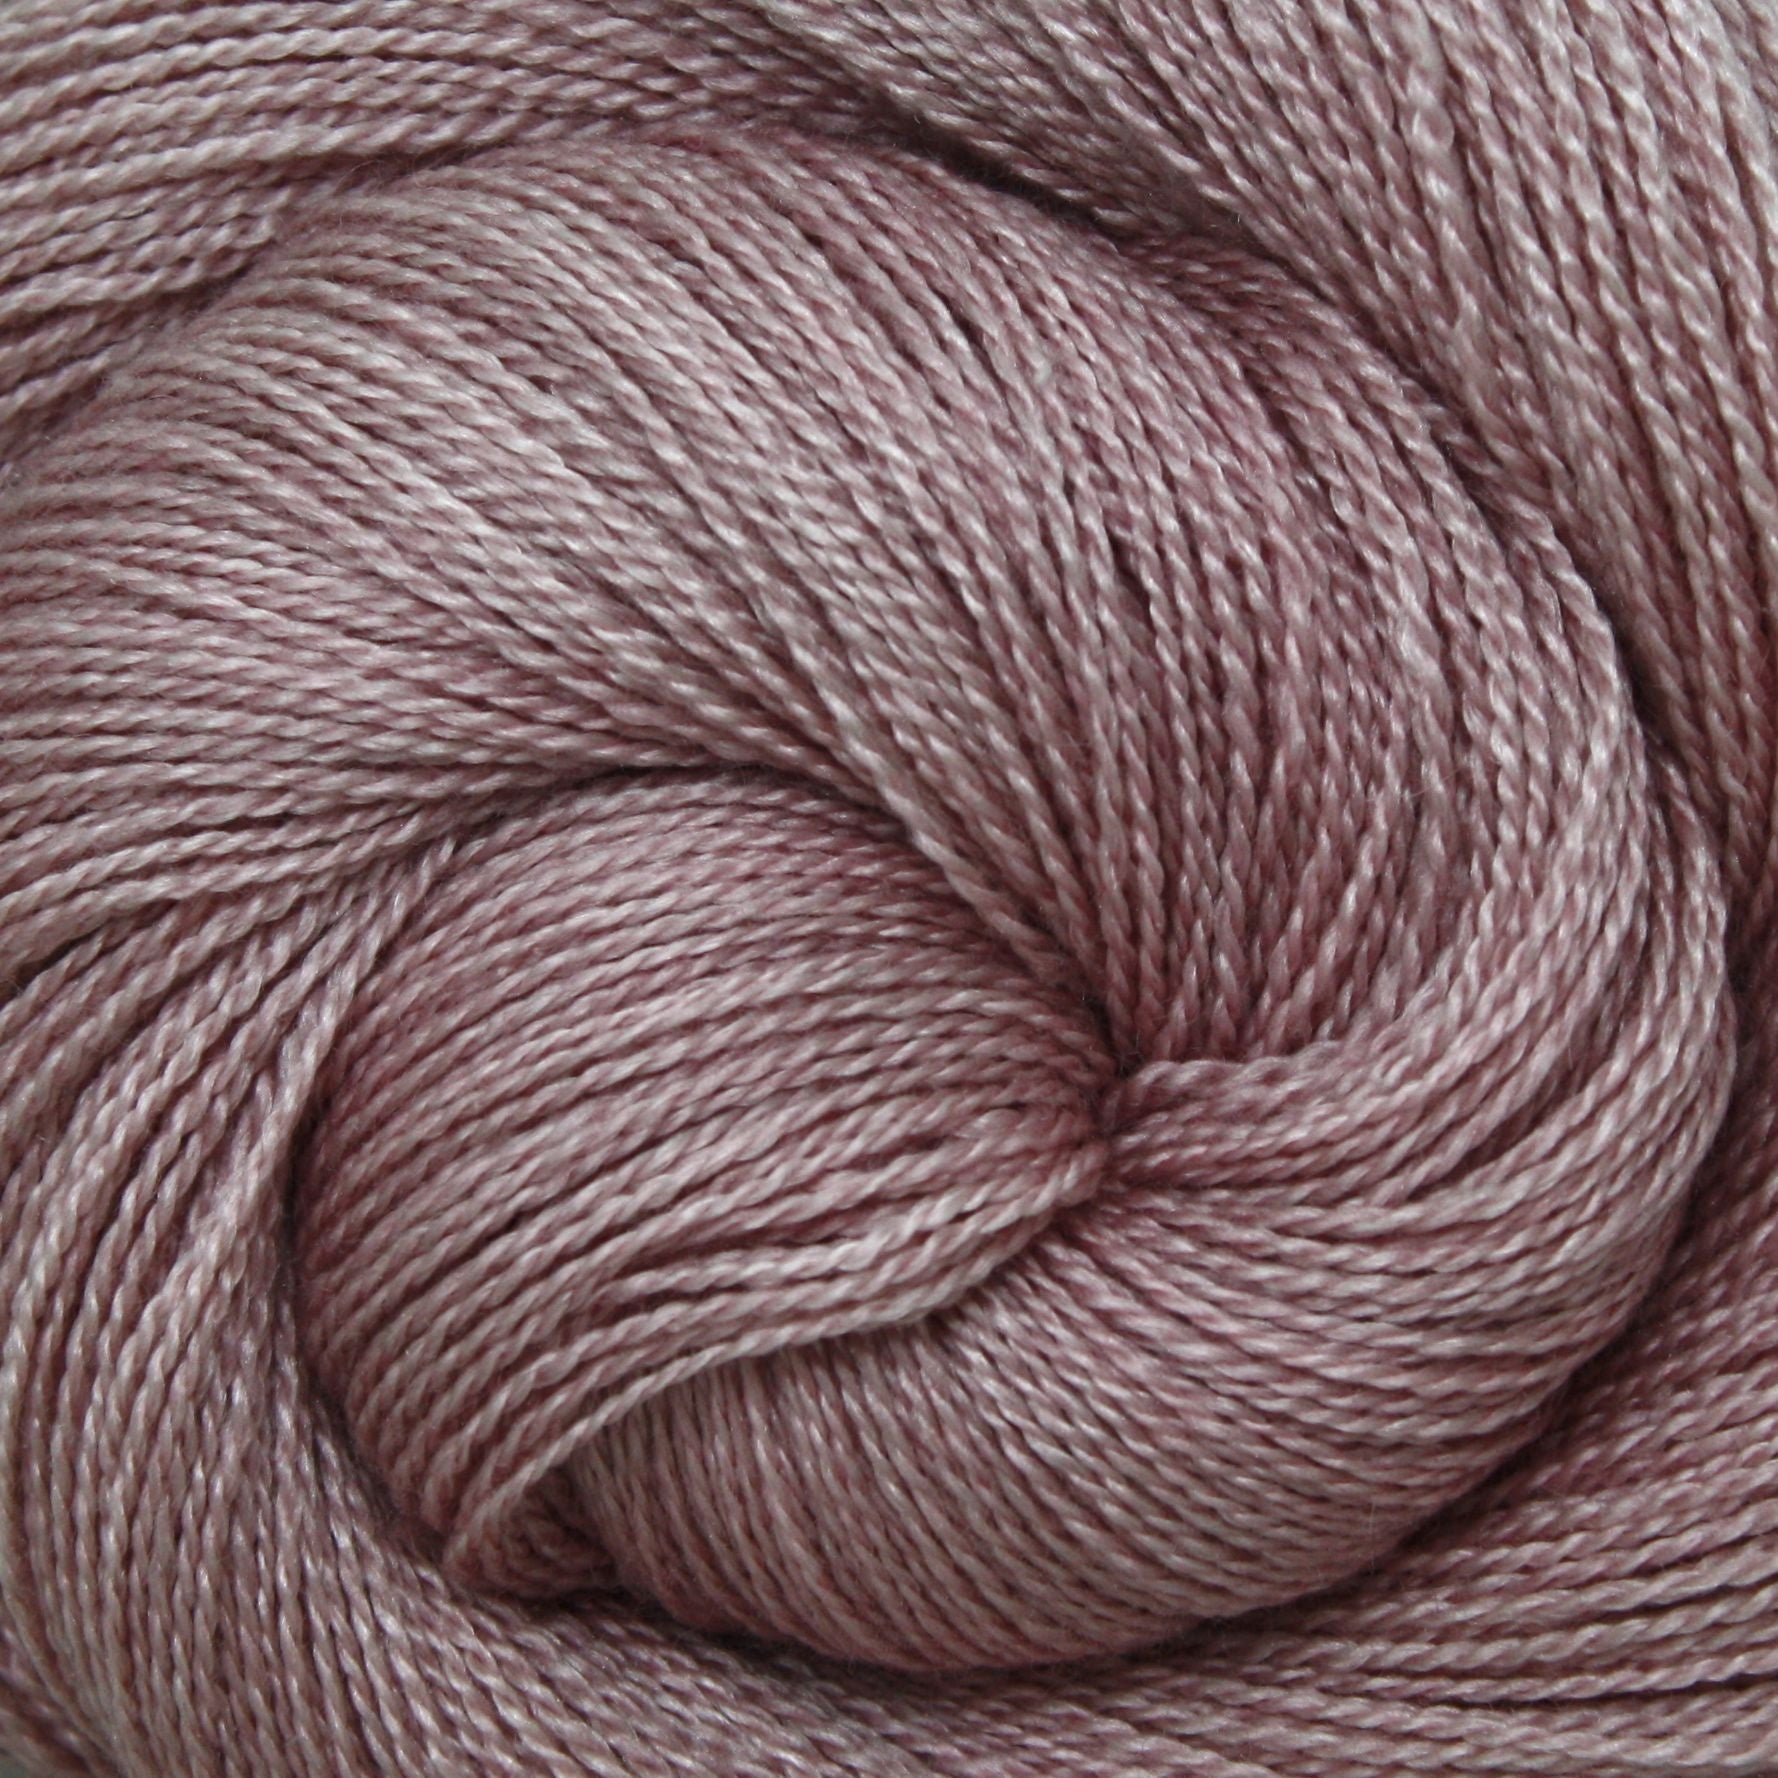 Starbright Yarn | Colorway: Tea Rose